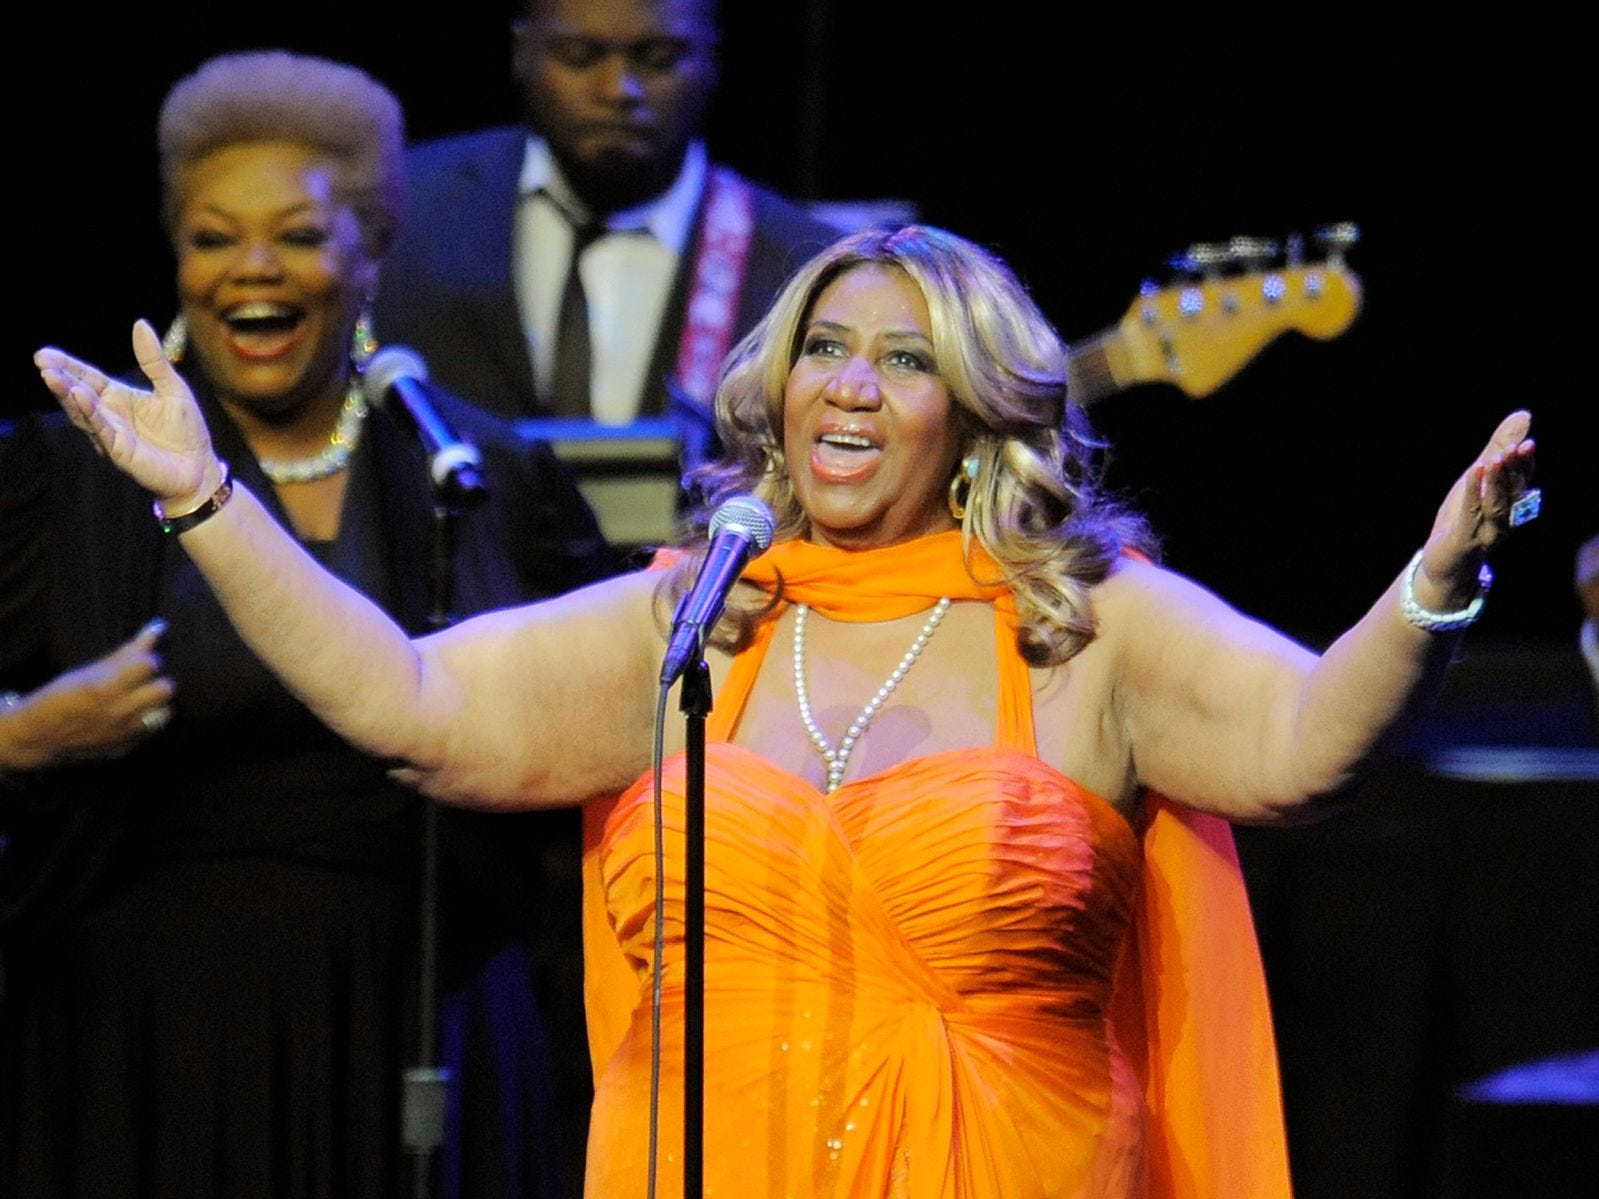 This July 25, 2012 file photo shows Aretha Franklin performing at the NOKIA Theatre L.A. LIVE in Los Angeles. Franklin sang for Mrs. Obama and about 3,000 fans at DAR Constitution Hall on Saturday, Nov. 17. Afterward, Franklin said it was great to see her VIP guests relax and shake their hips a little, especially after a tough reelection campaign.